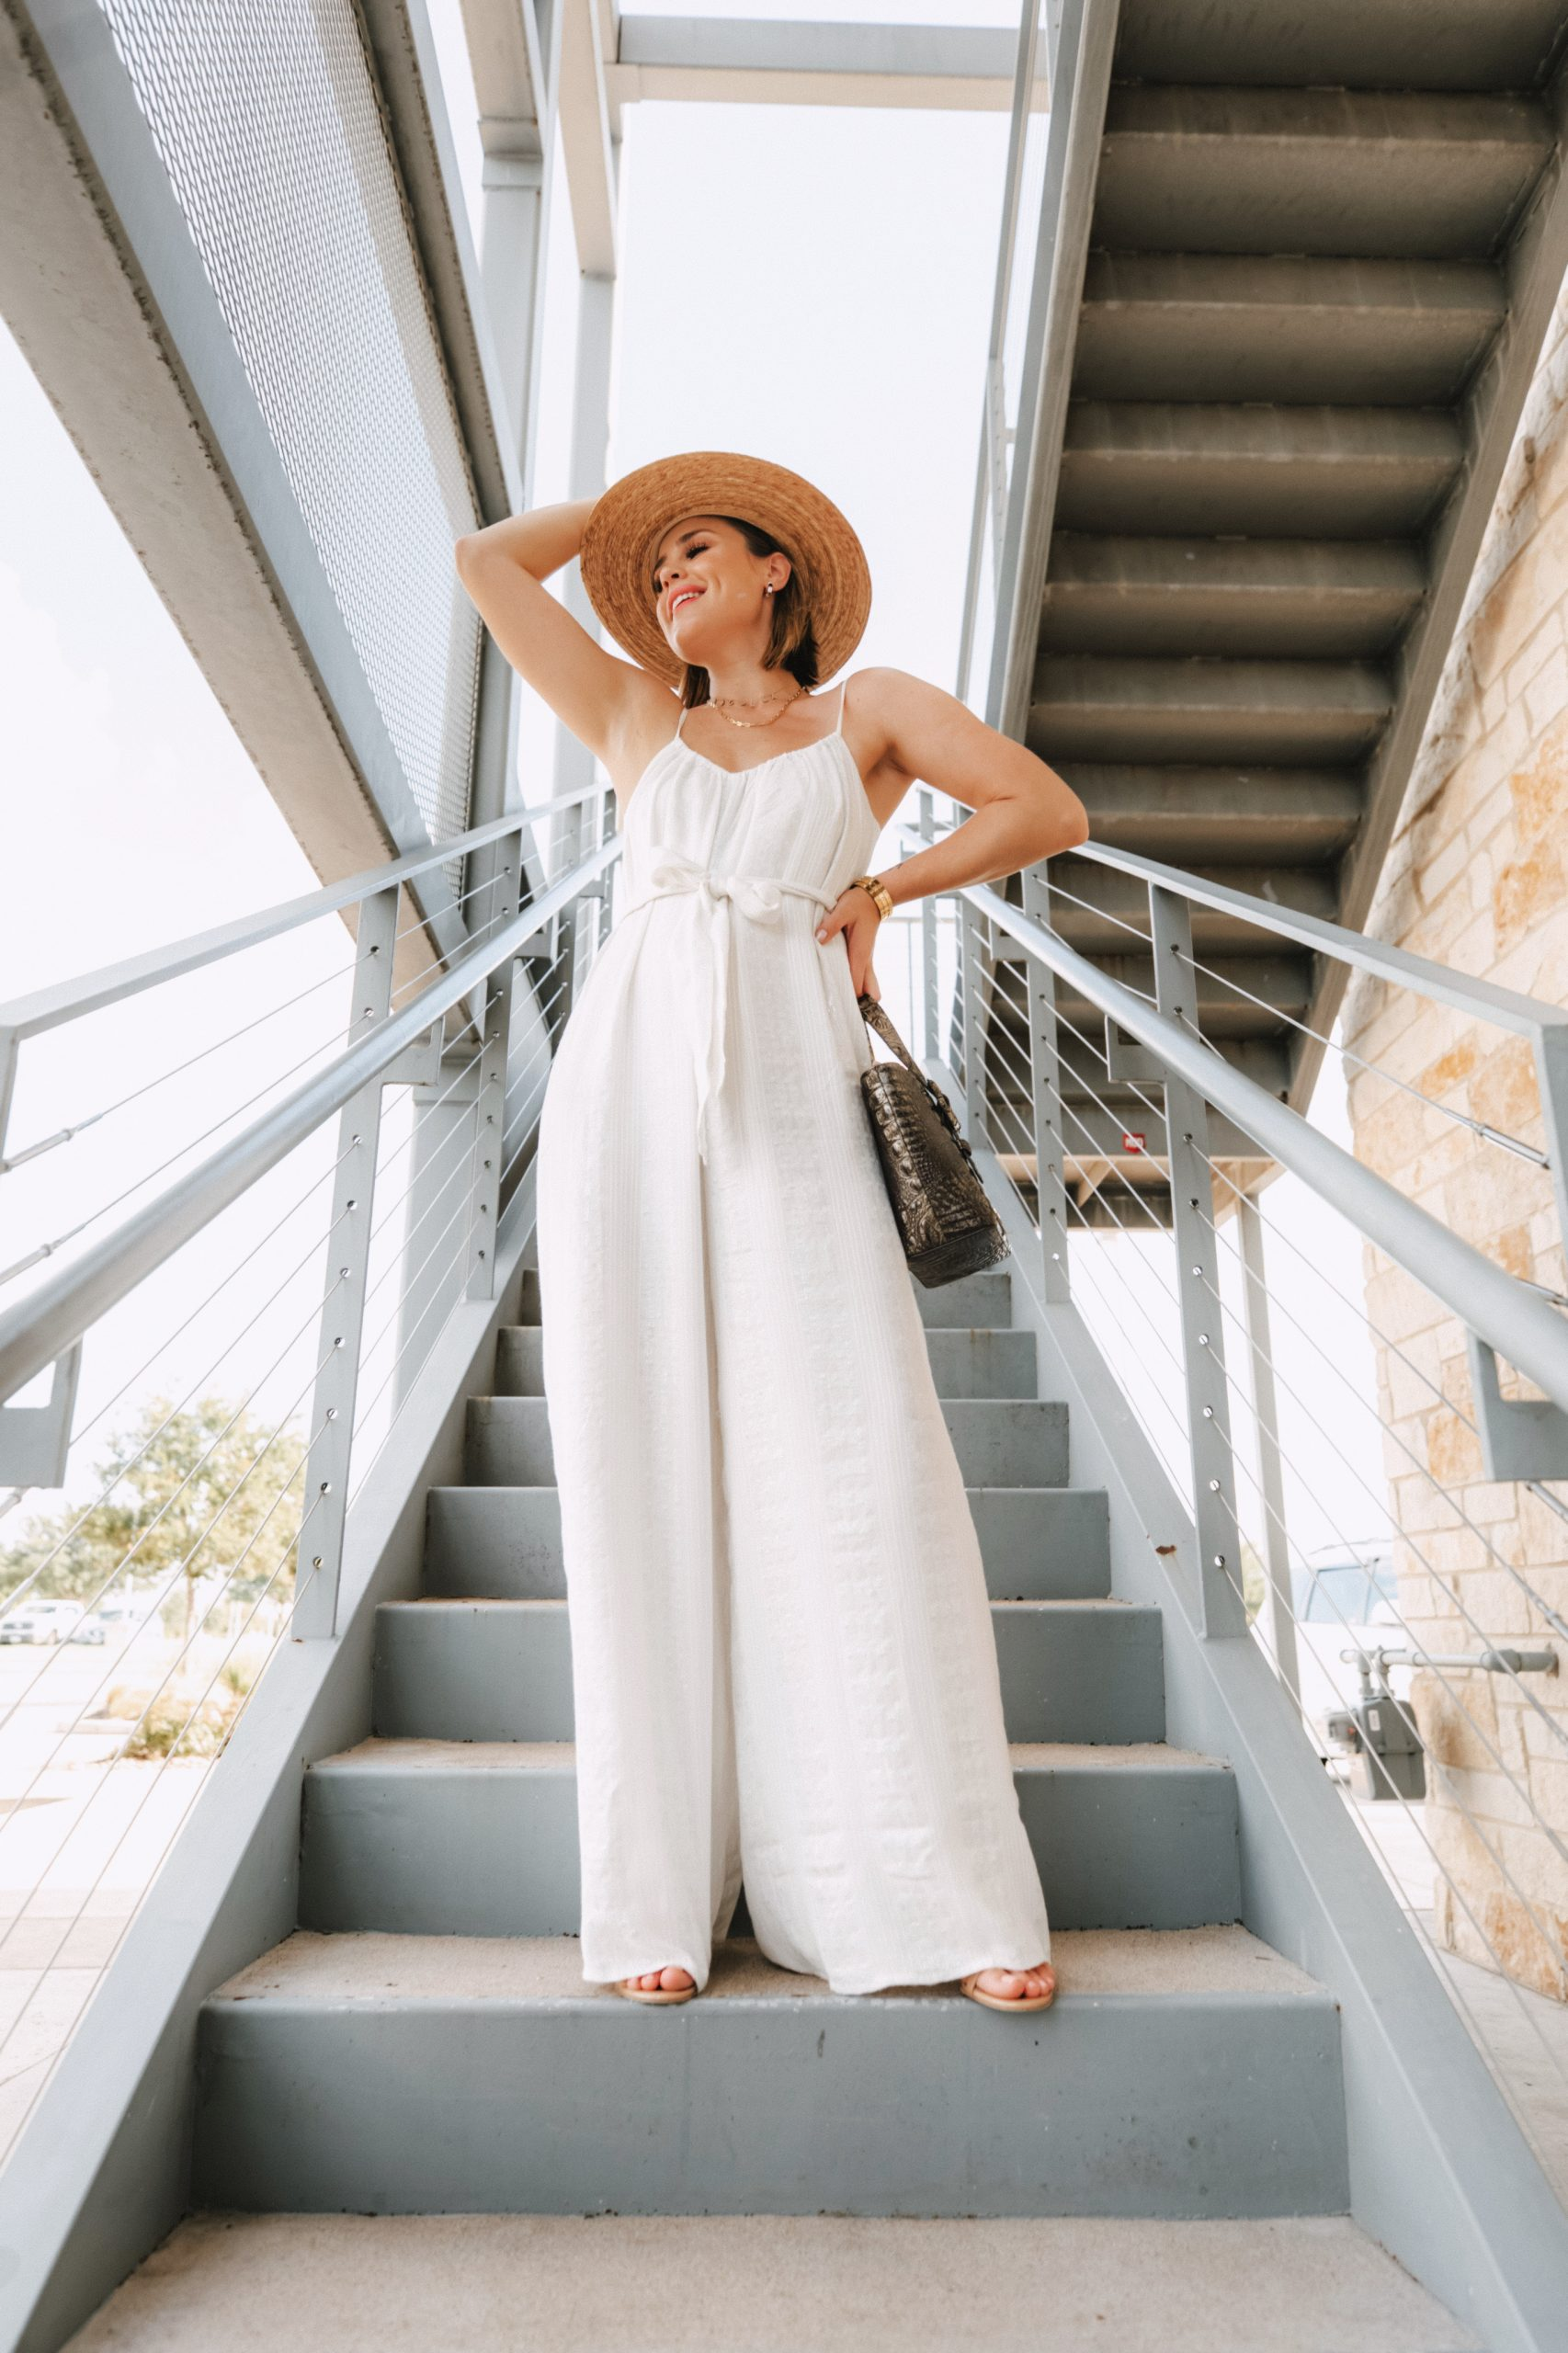 Looking for Cute Jumpsuits and ideas on how to wear them? Houston blogger Elly Brown shares over 15 jumpsuits for every budget!